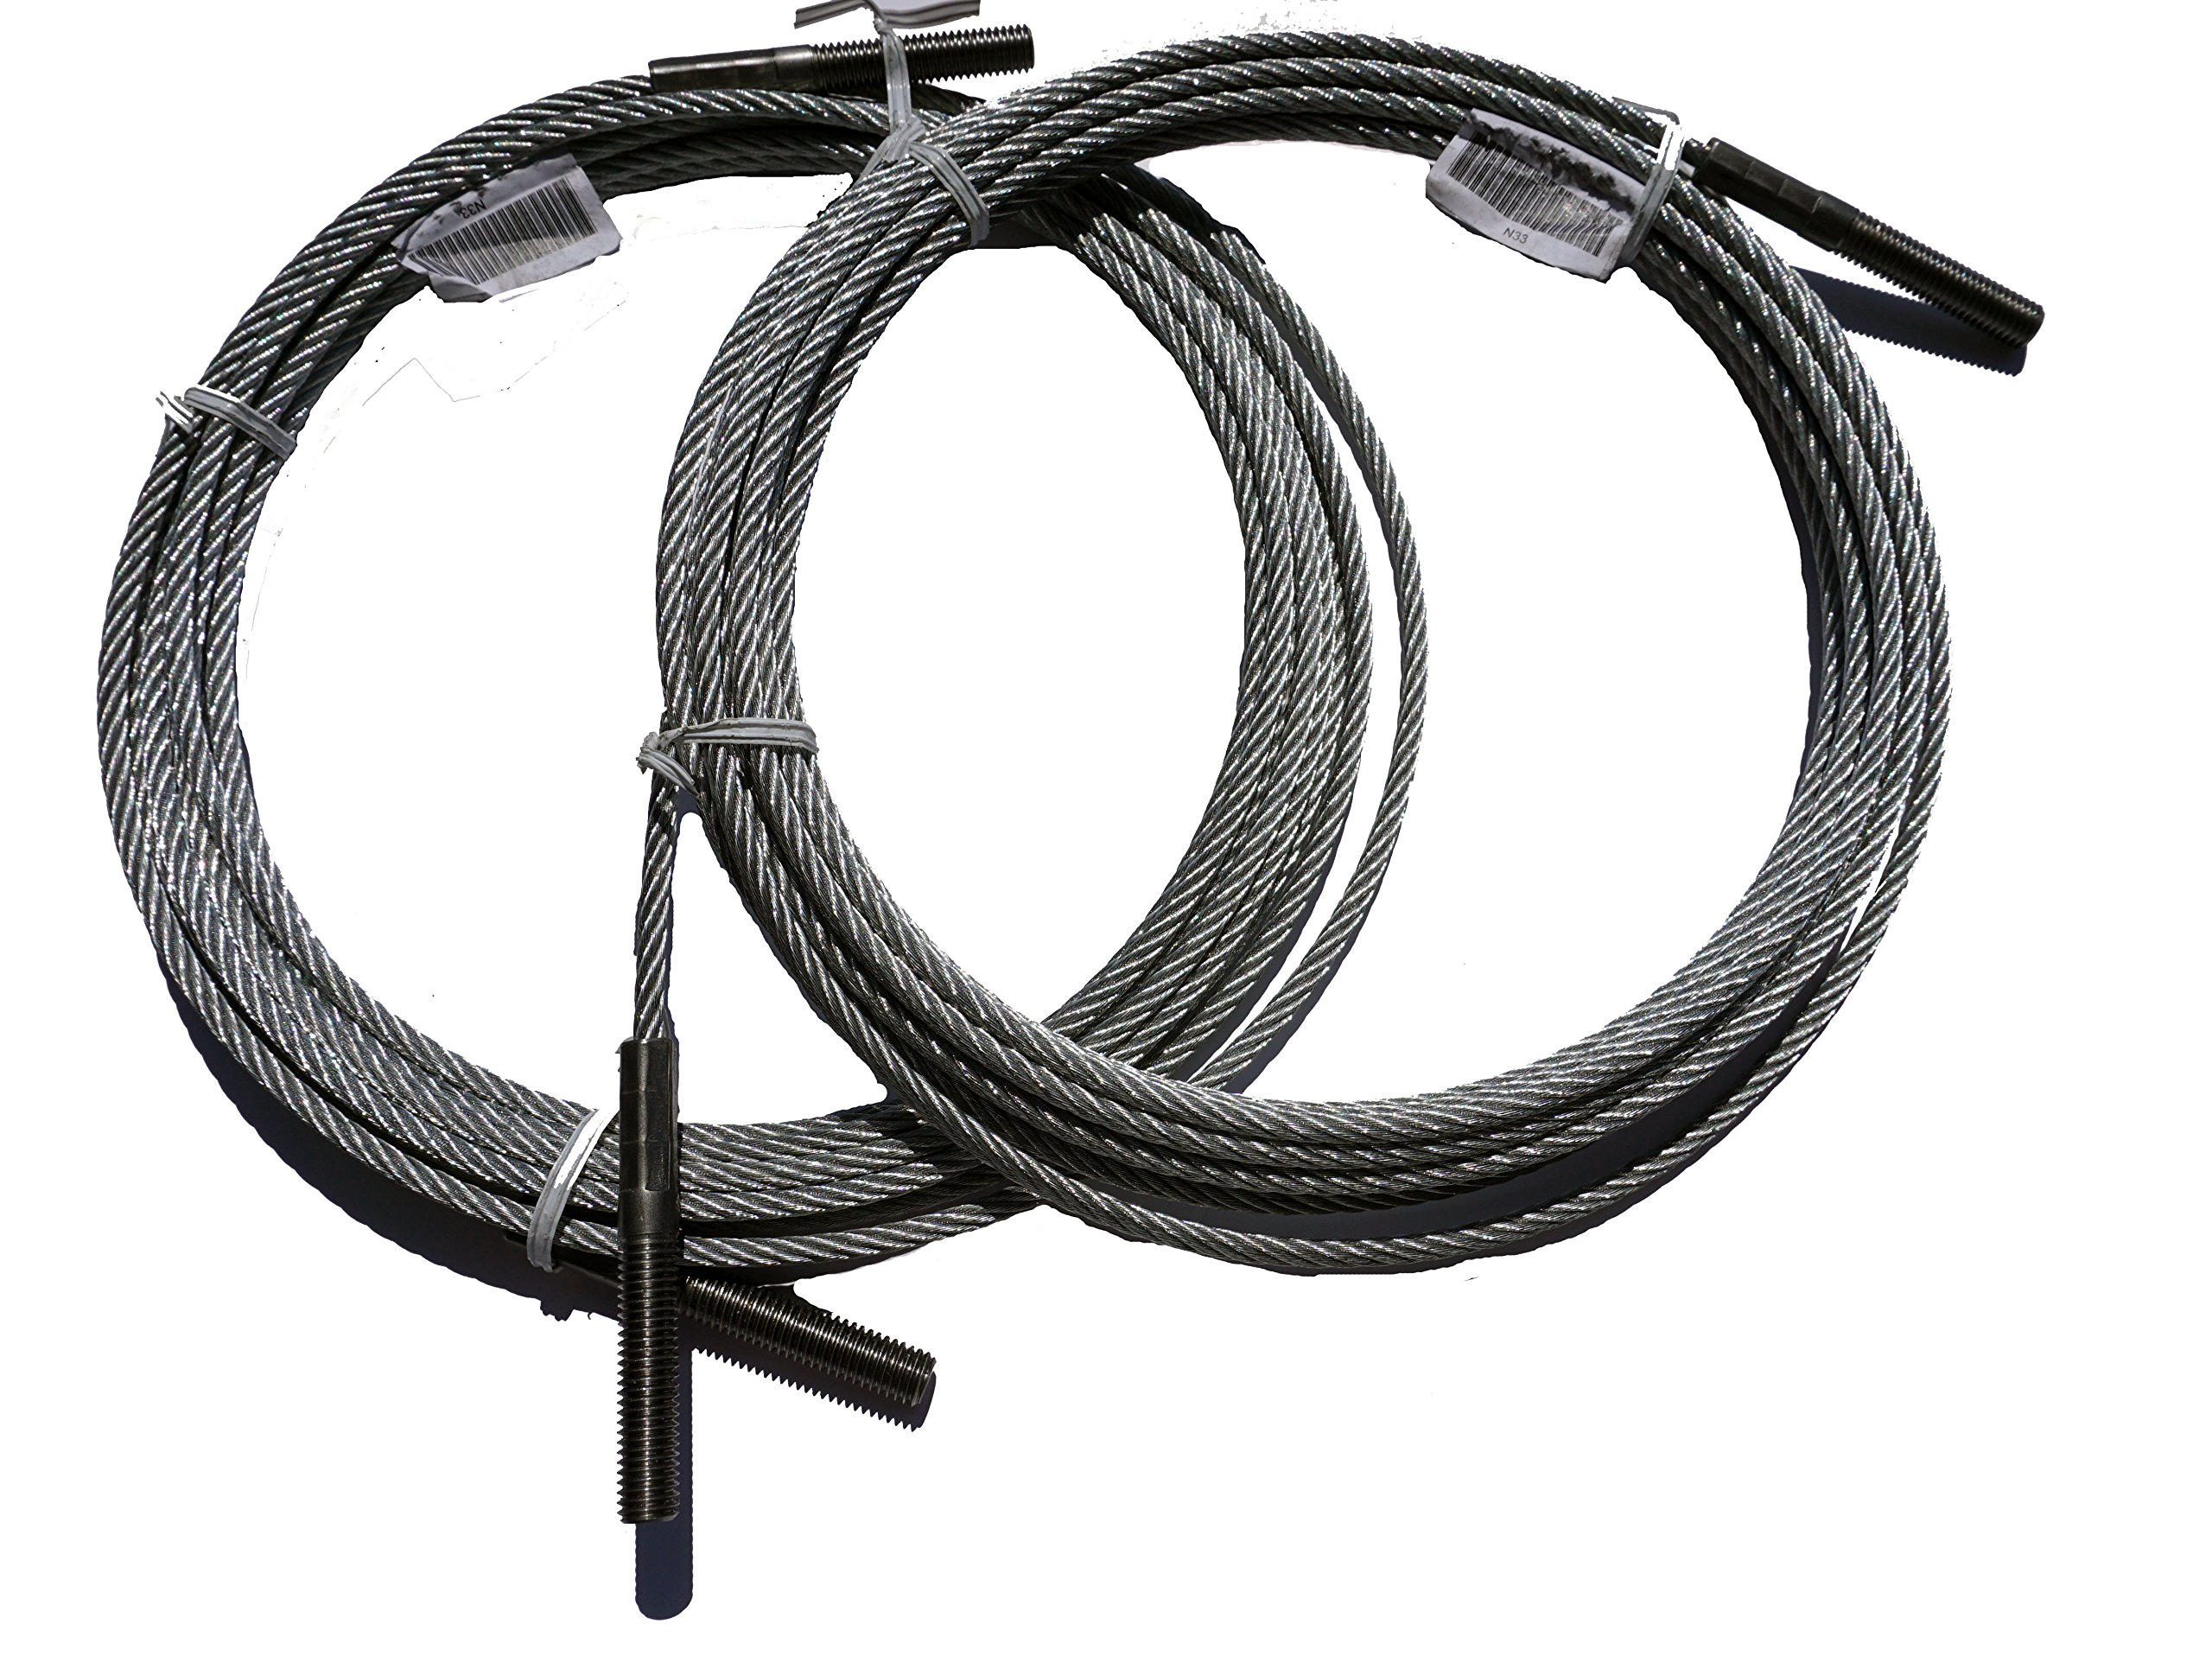 Rotary lift SPOA9 Equalizer Cable #N33 Set of Two (2) by Rotary